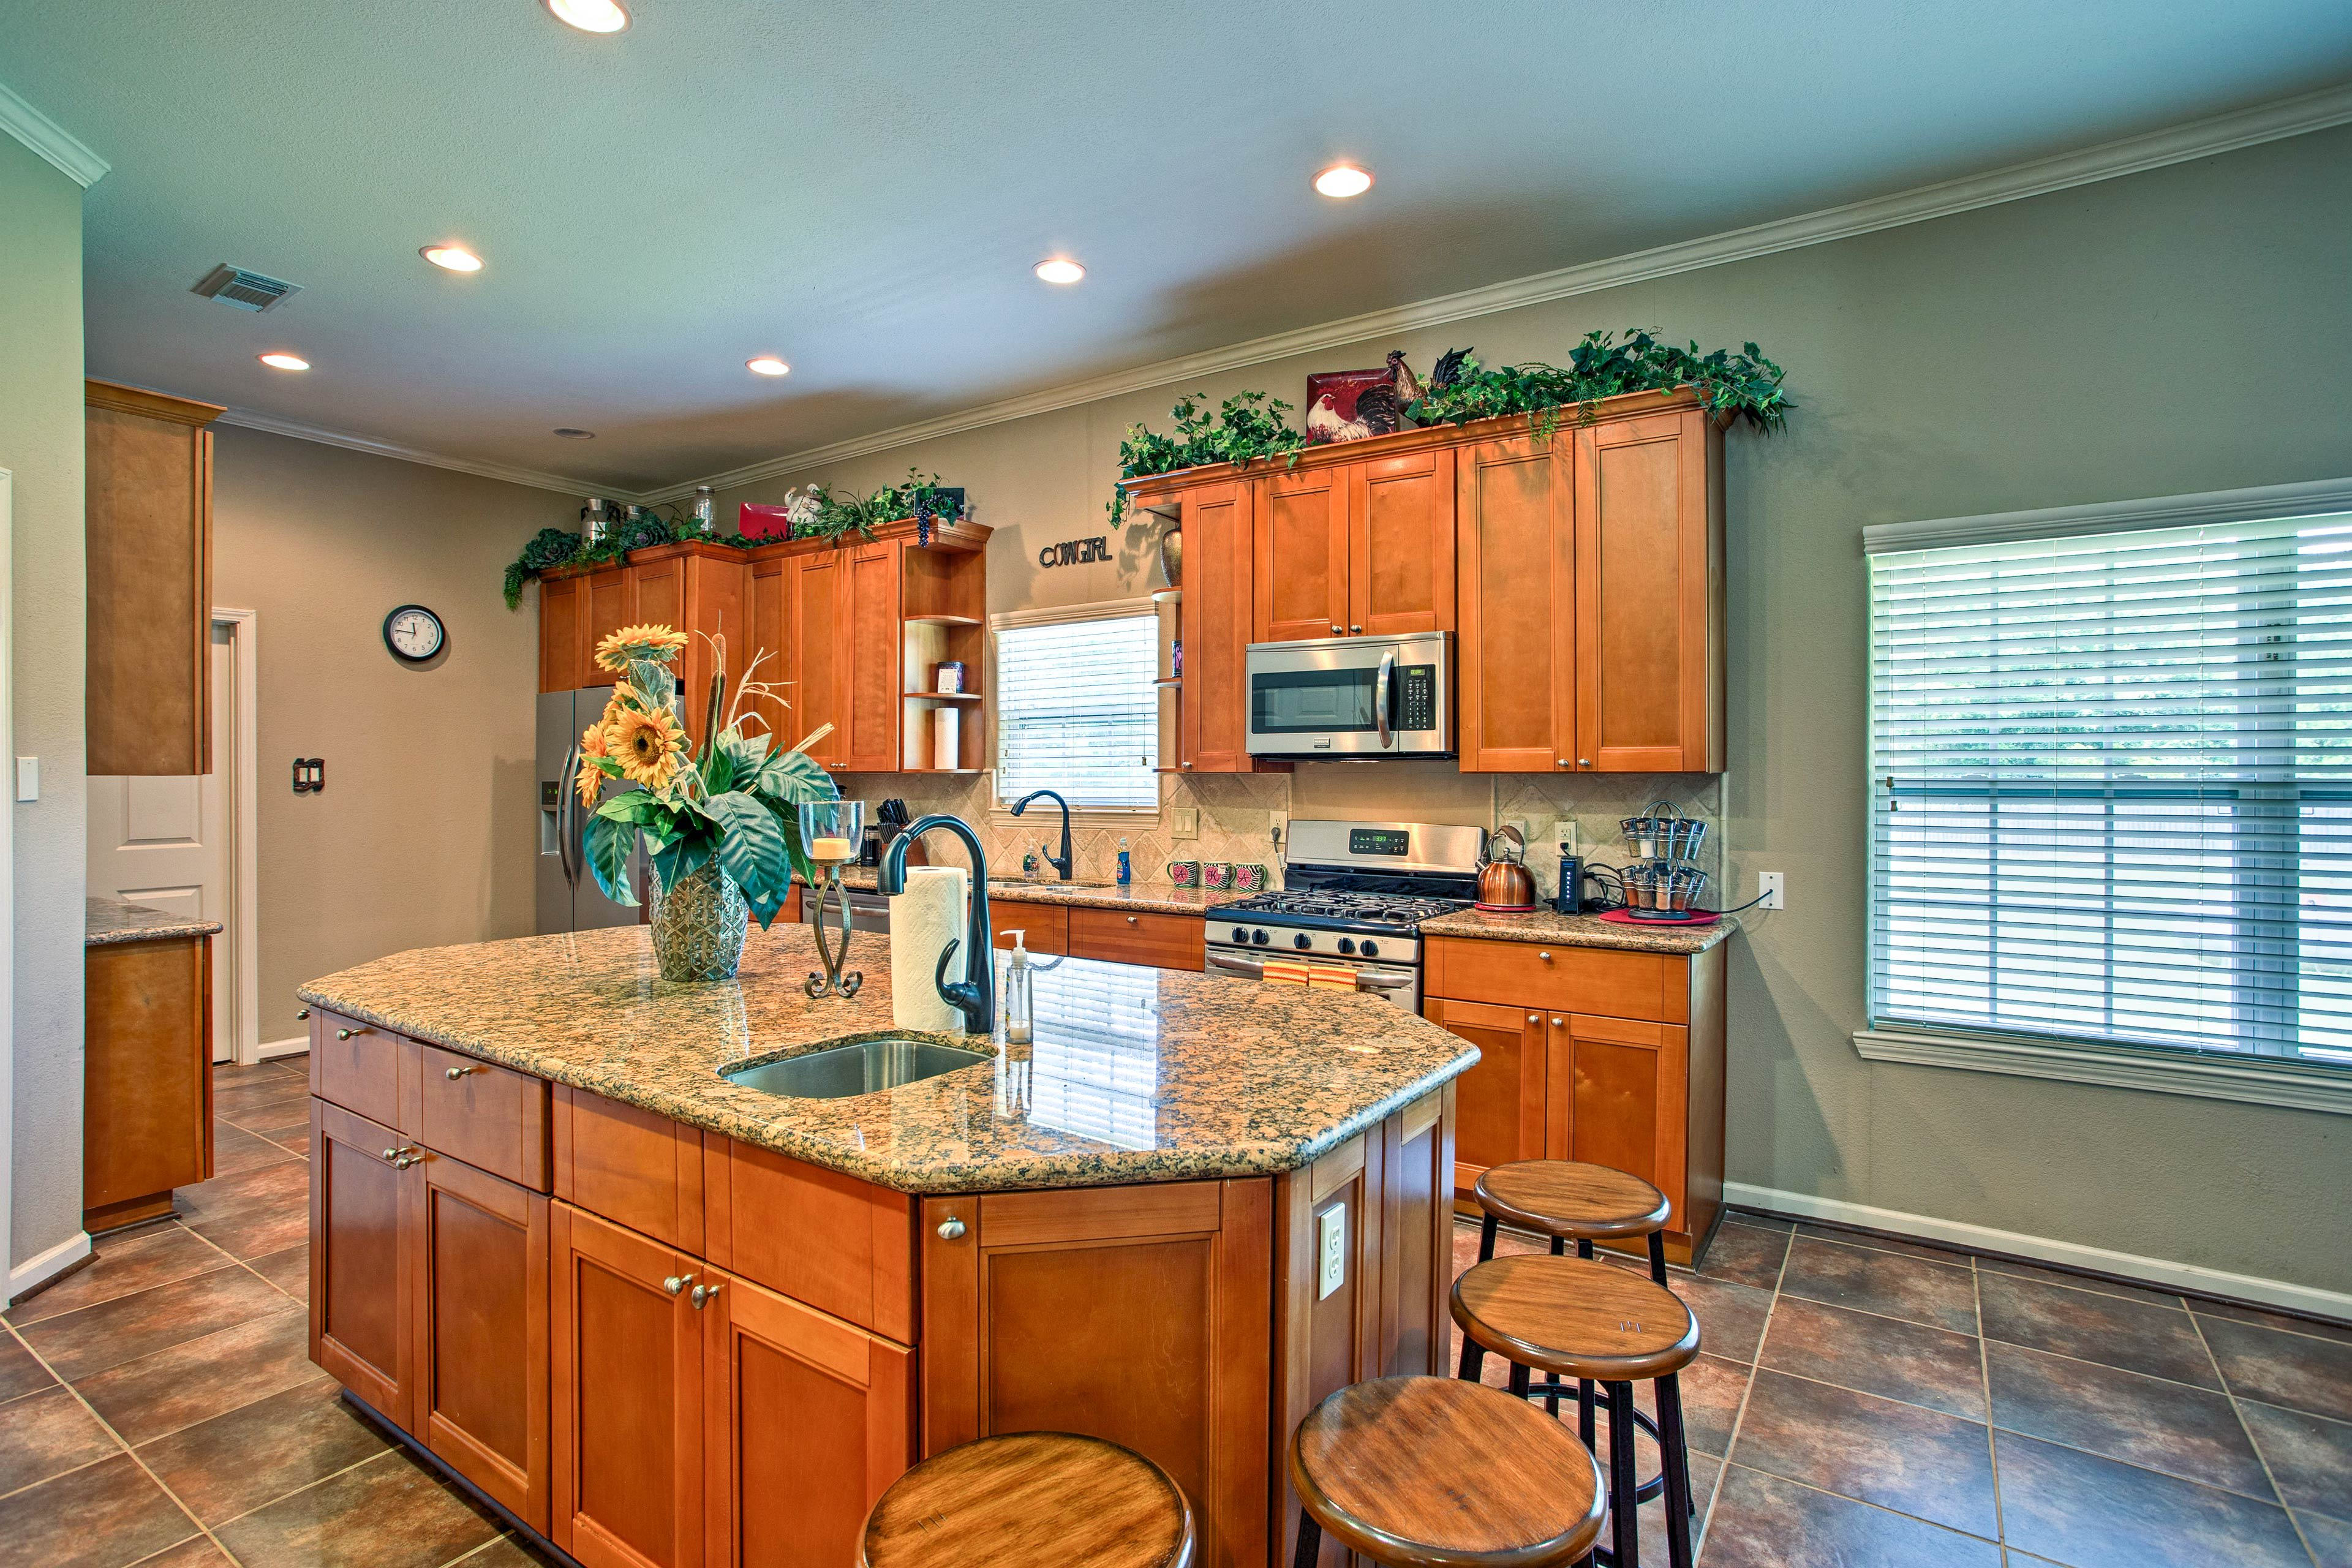 Fall in love with cooking all over again in this fully equipped kitchen.